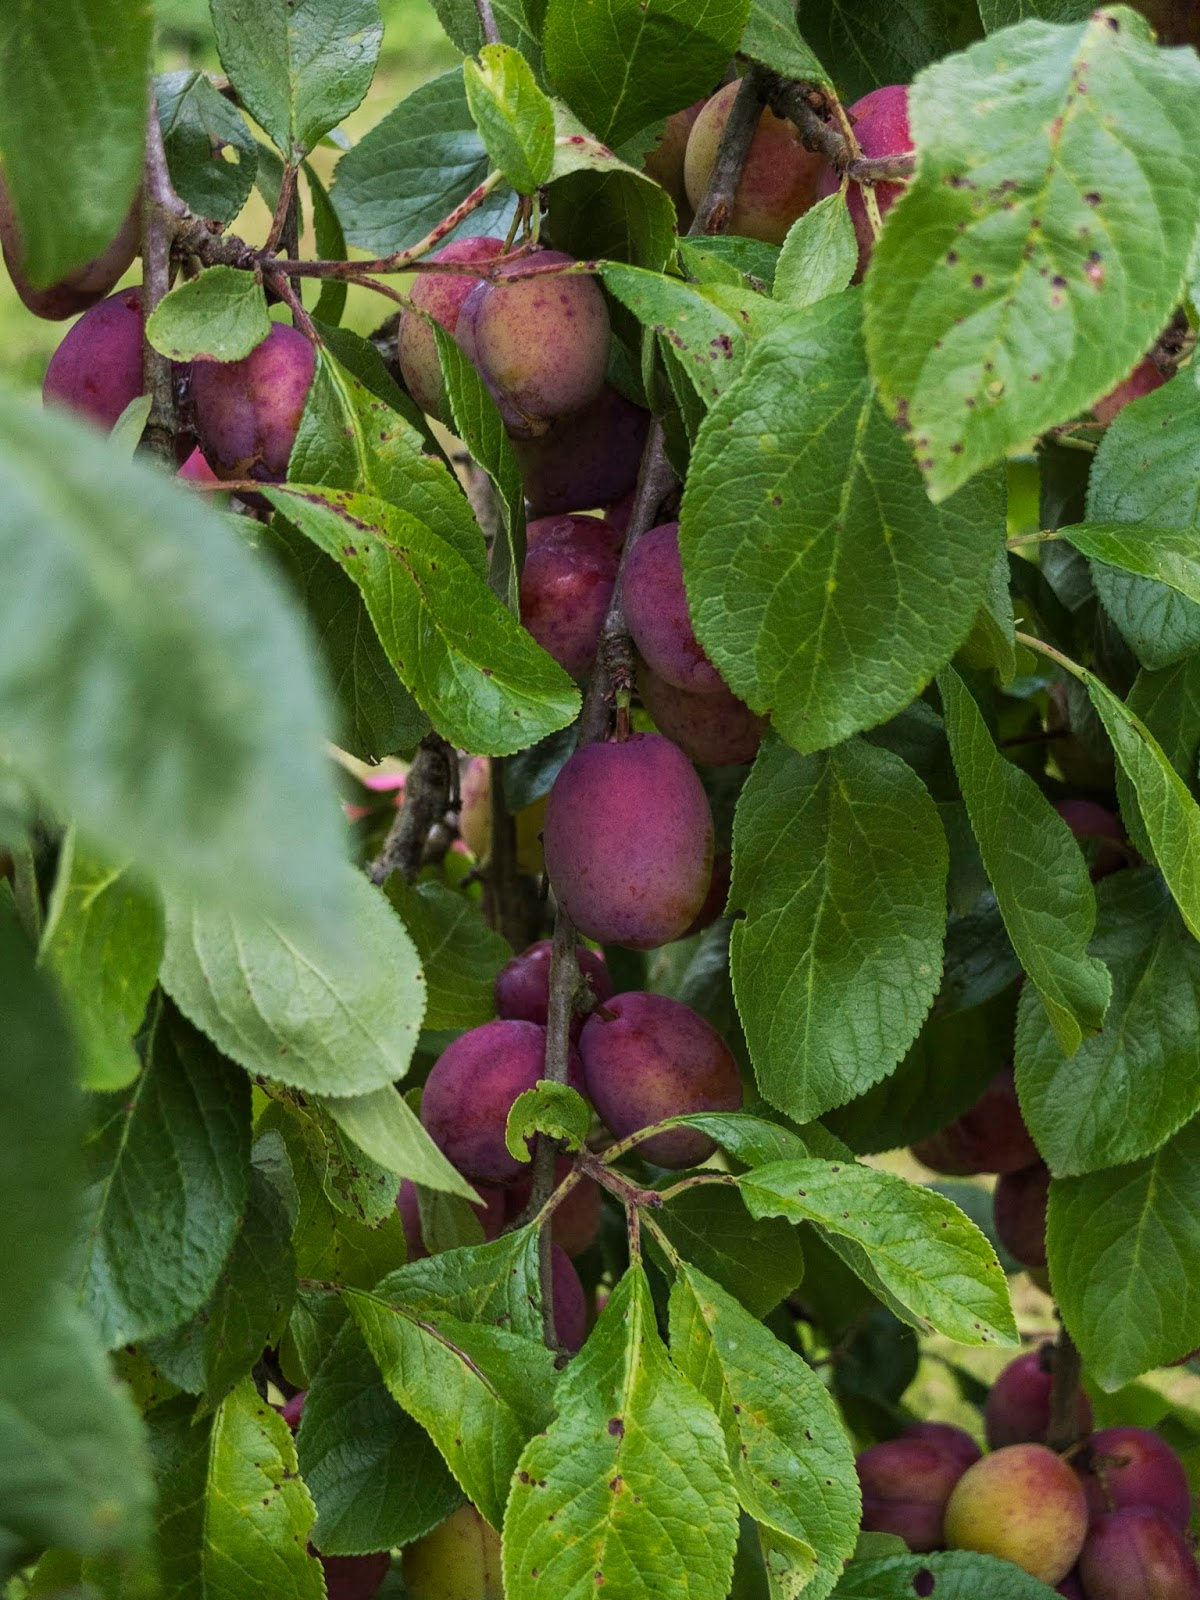 A close up of plums among branches and leaves in a tree.